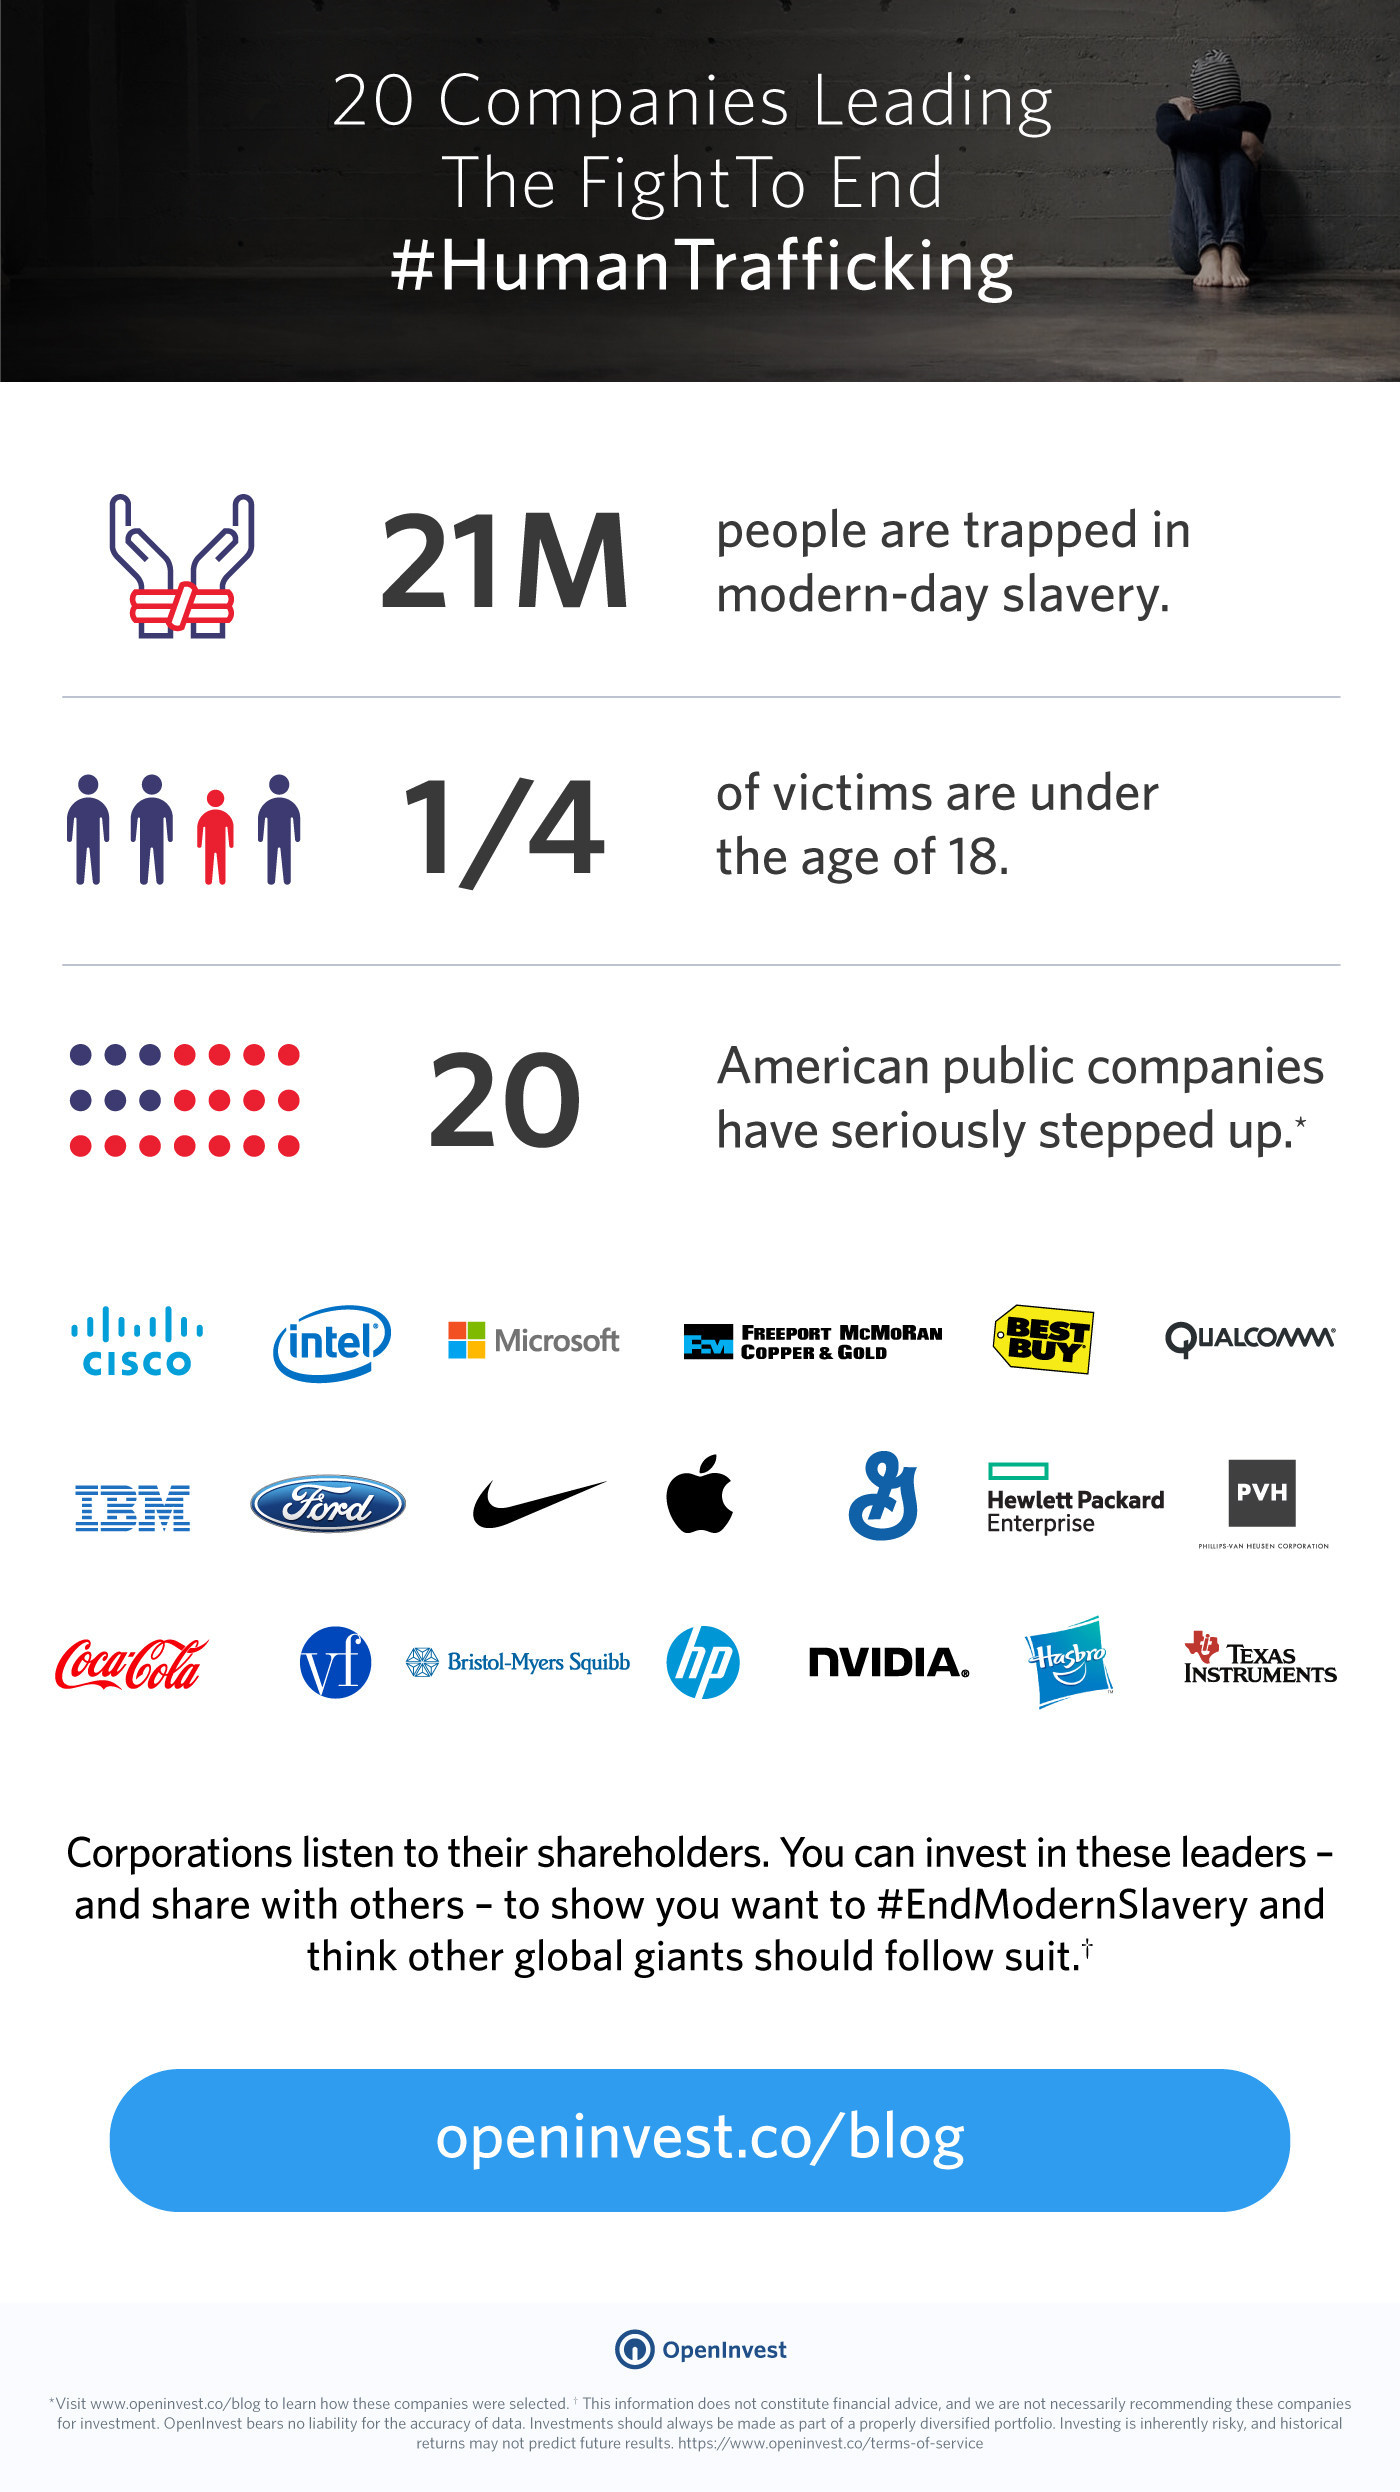 OpenInvest and JUST Capital identified 20 publicly traded companies leading the fight to end human trafficking